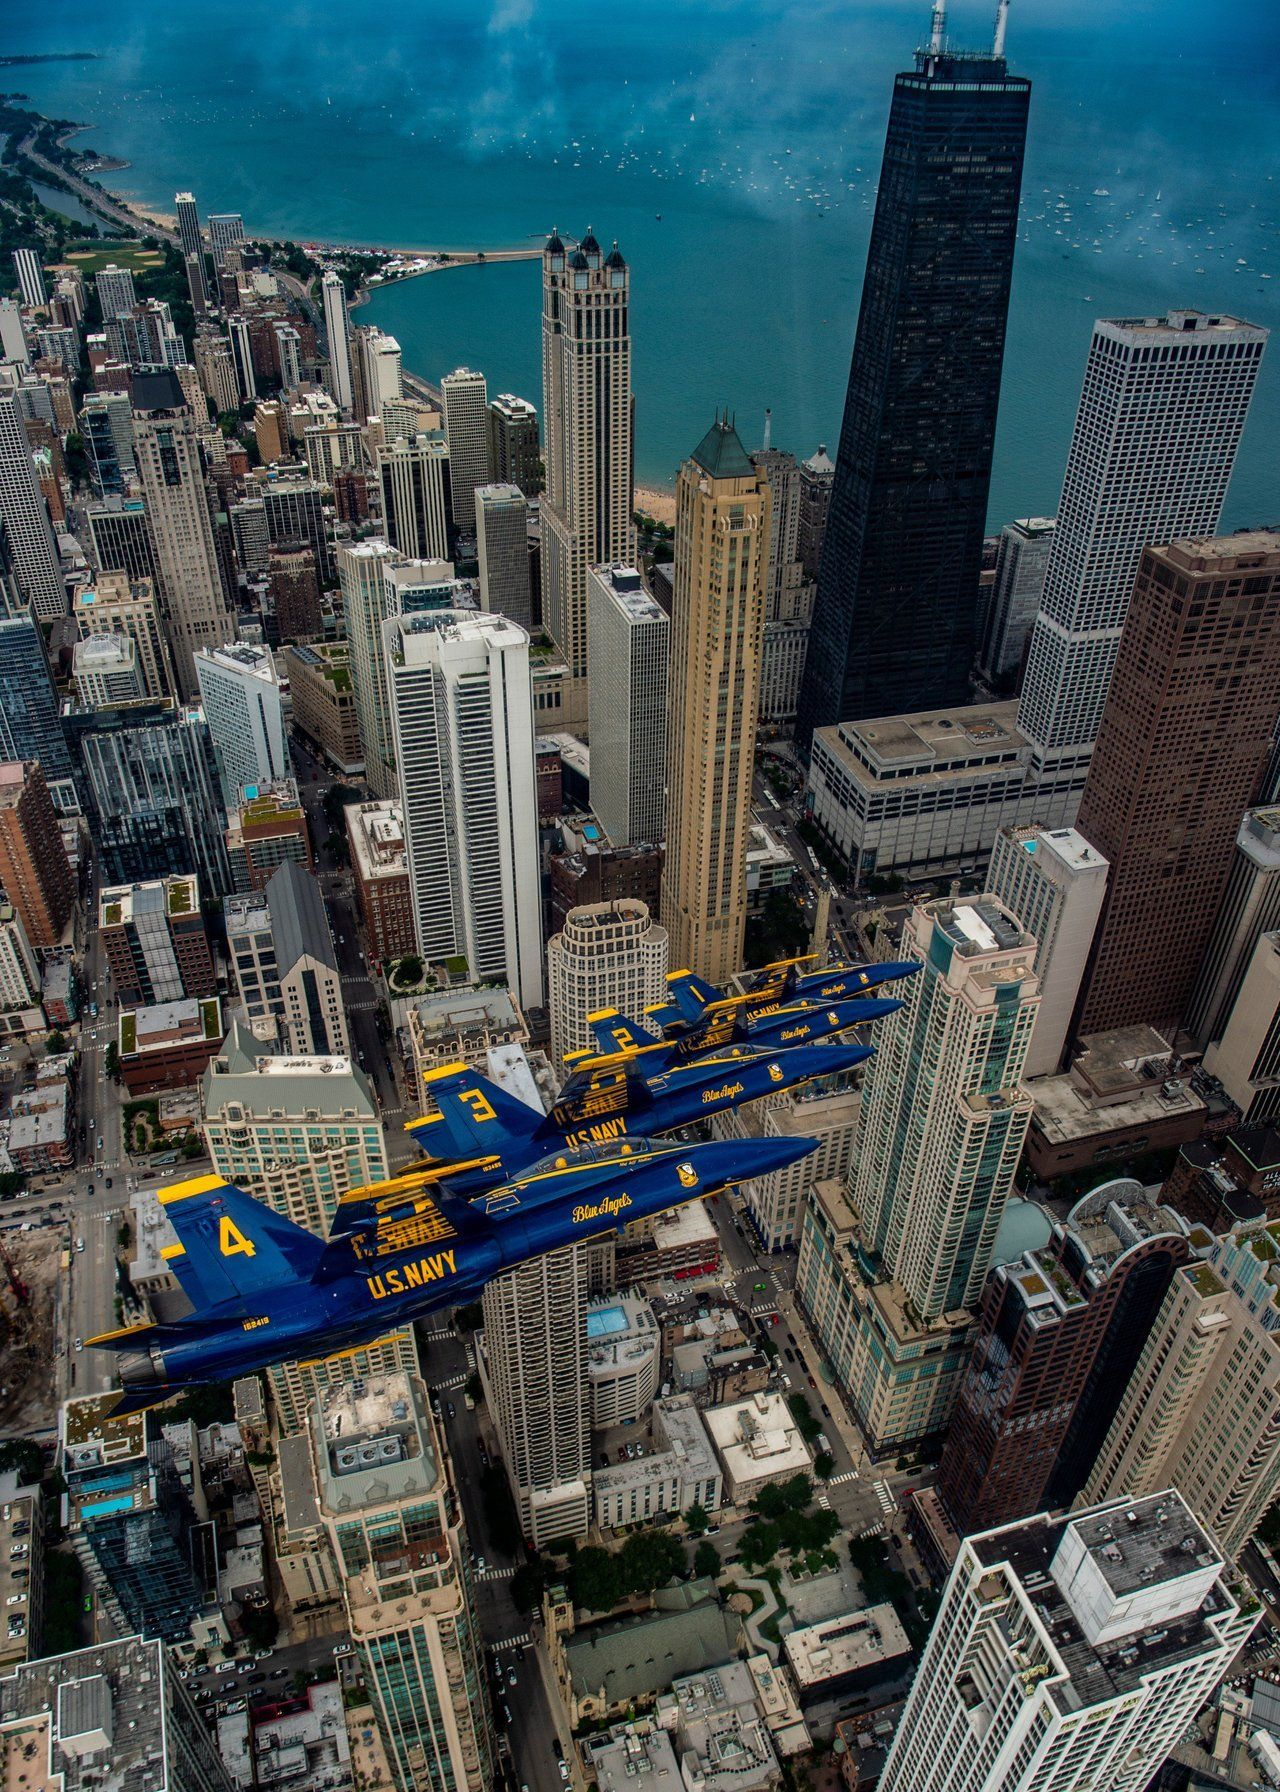 Aviation Blogs The Blue Angels over Chicago, from their